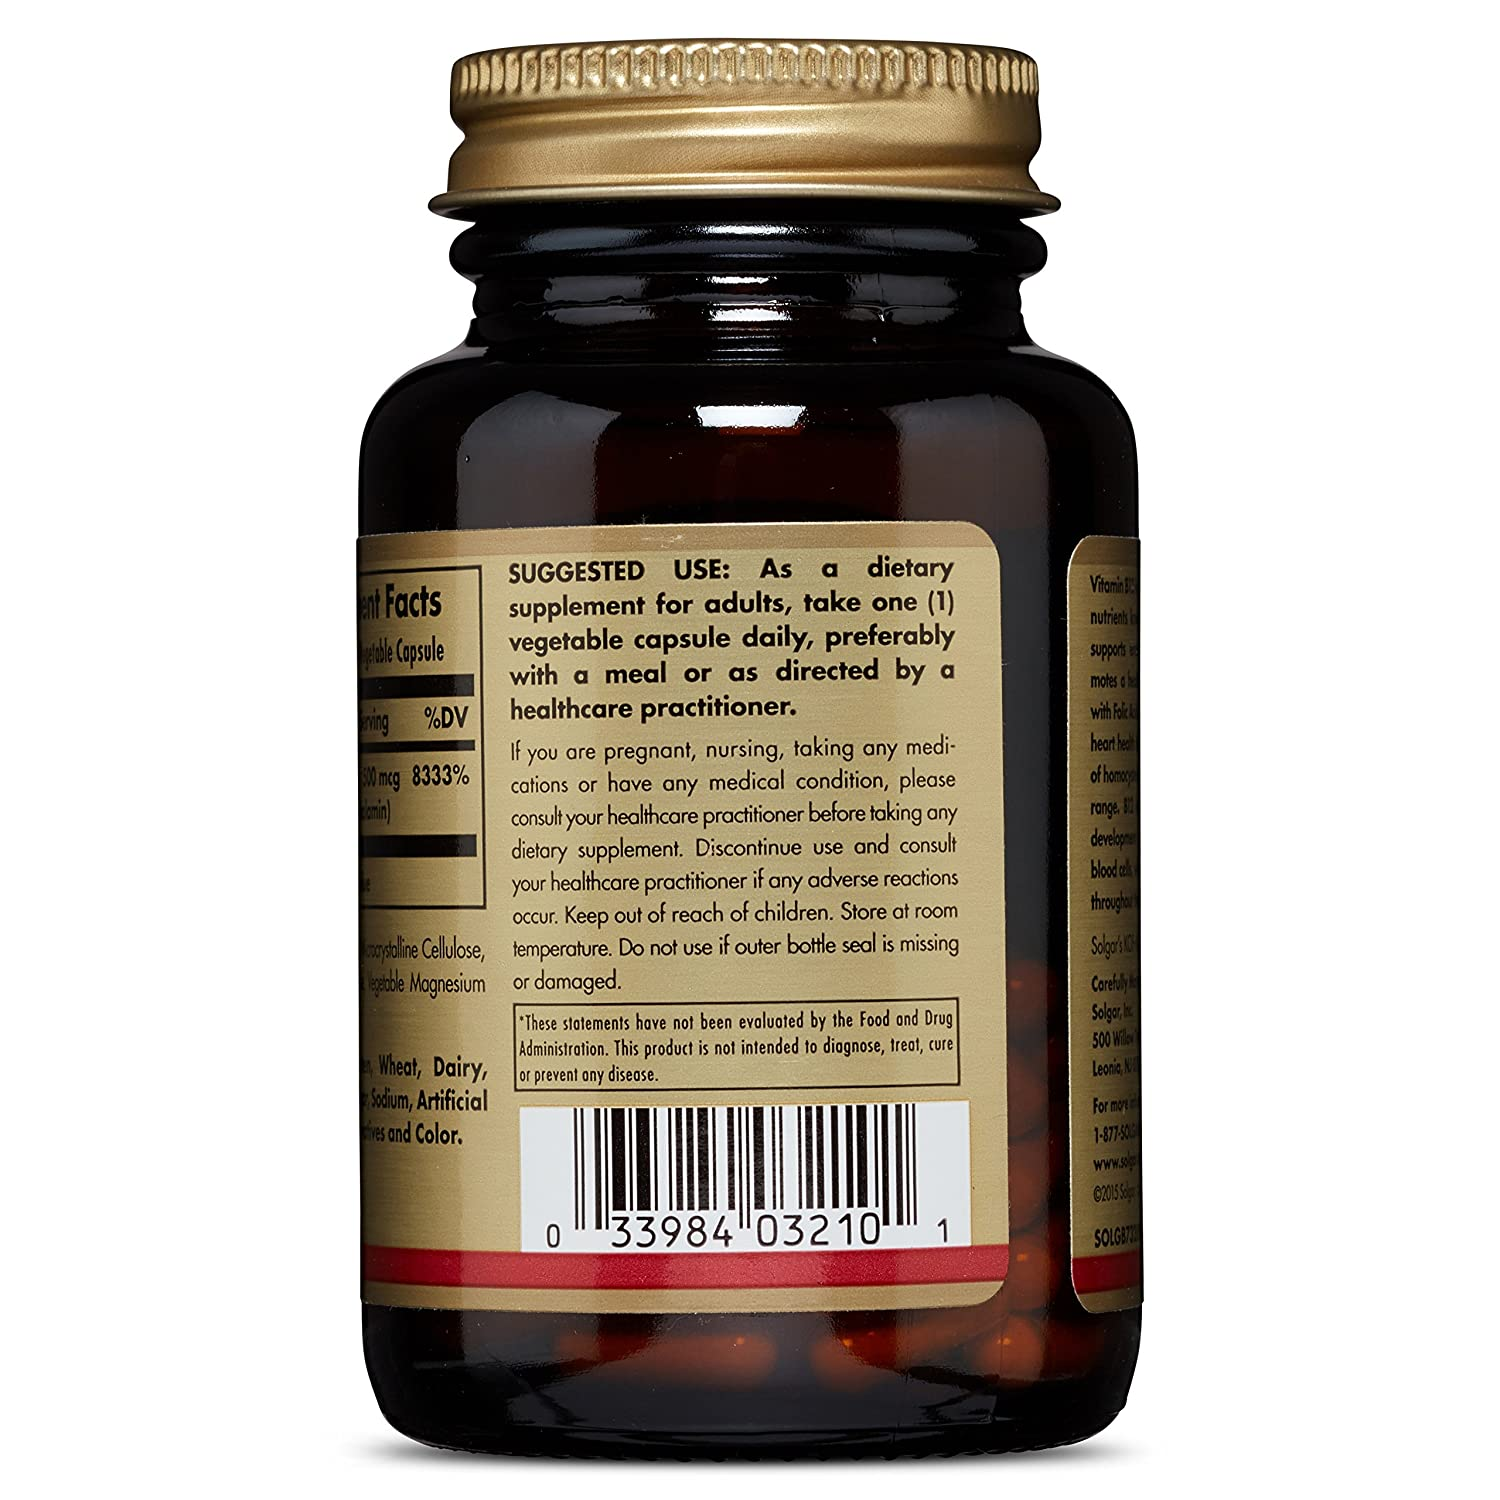 Amazon.com: Solgar - Vitamin B12, 500 mcg, 100 Vegetable Capsules: Health & Personal Care